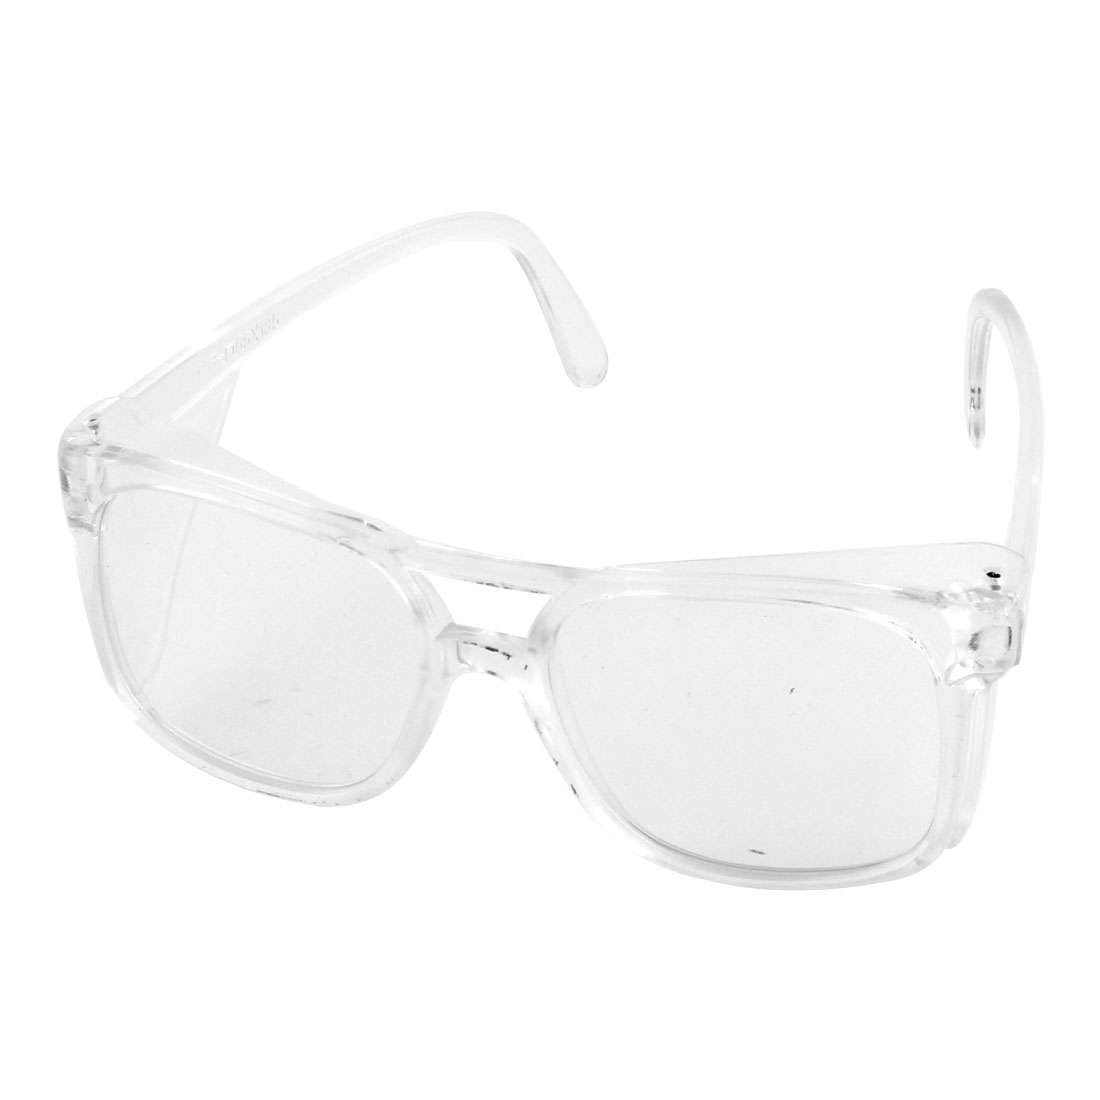 Plastic Full Frame Protective Safety Glasses Goggle Welding Eyeglasses Clear